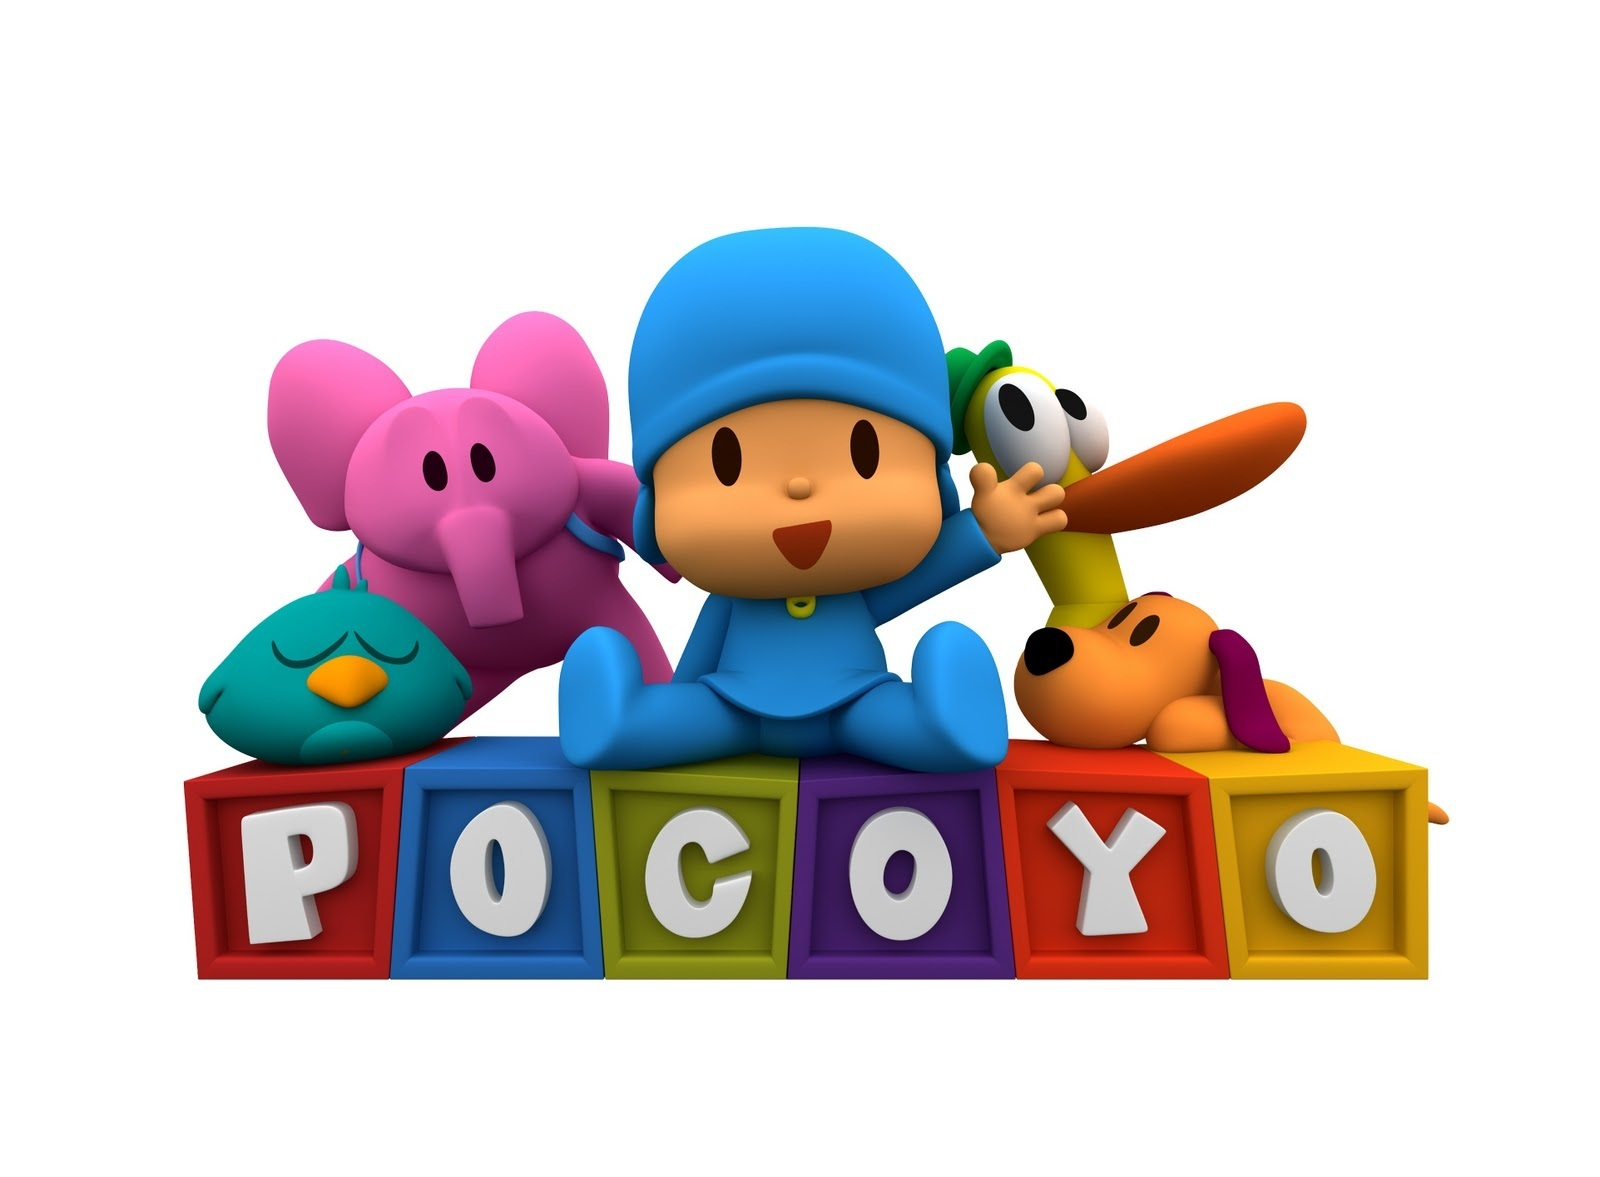 Pocoyo YouTube http://www.escapistmagazine.com/forums/read/18.399397-Season-Three-of-MLP-FiM-killed-the-show?page=2